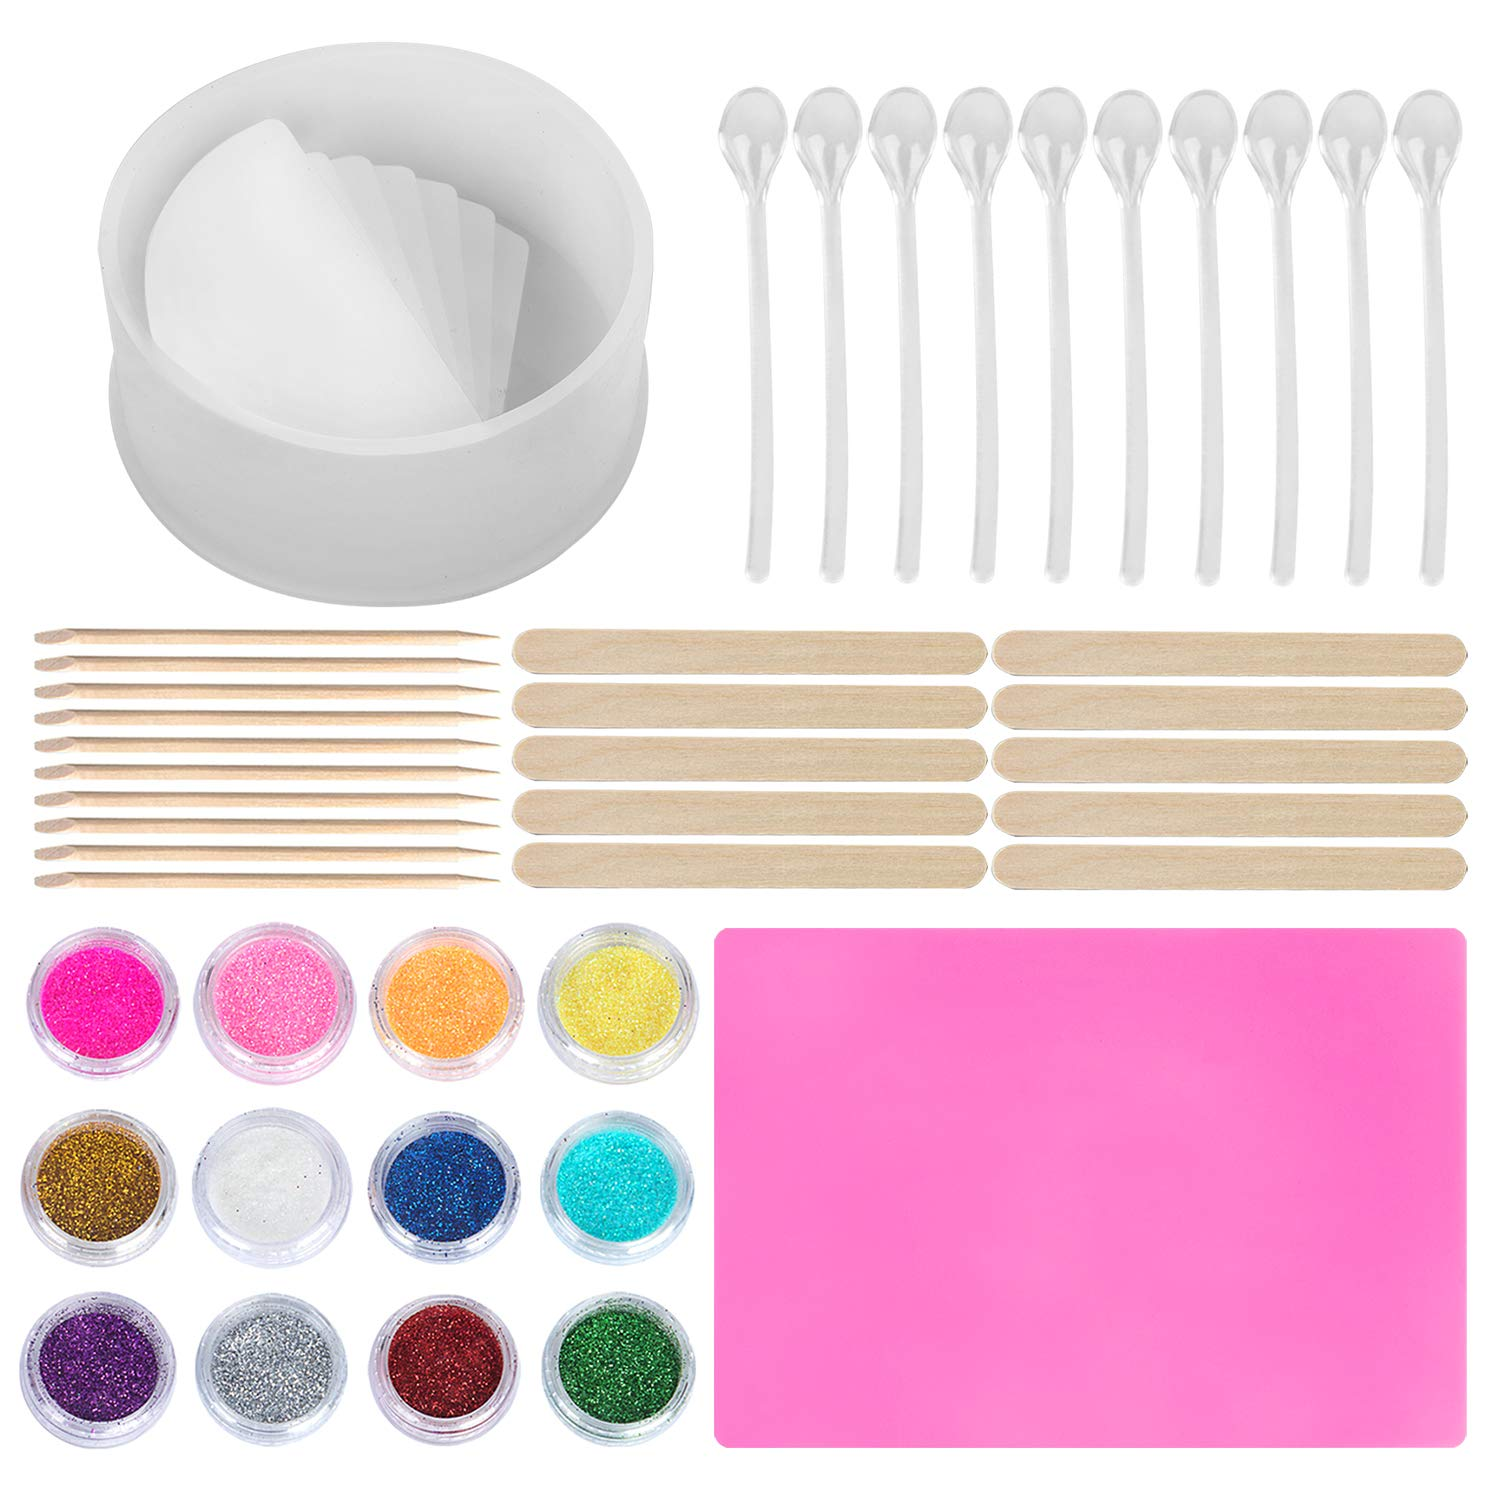 HOMEIDOL Silicone Resin Mold, Round Stair Mold with Stir Sticks, Stirring Spoon, Silicone Mat and 12 Color Powder, DIY Planter Pot Mold, Pen Holder Mold for Succulent Plants, Flowers Craft Art